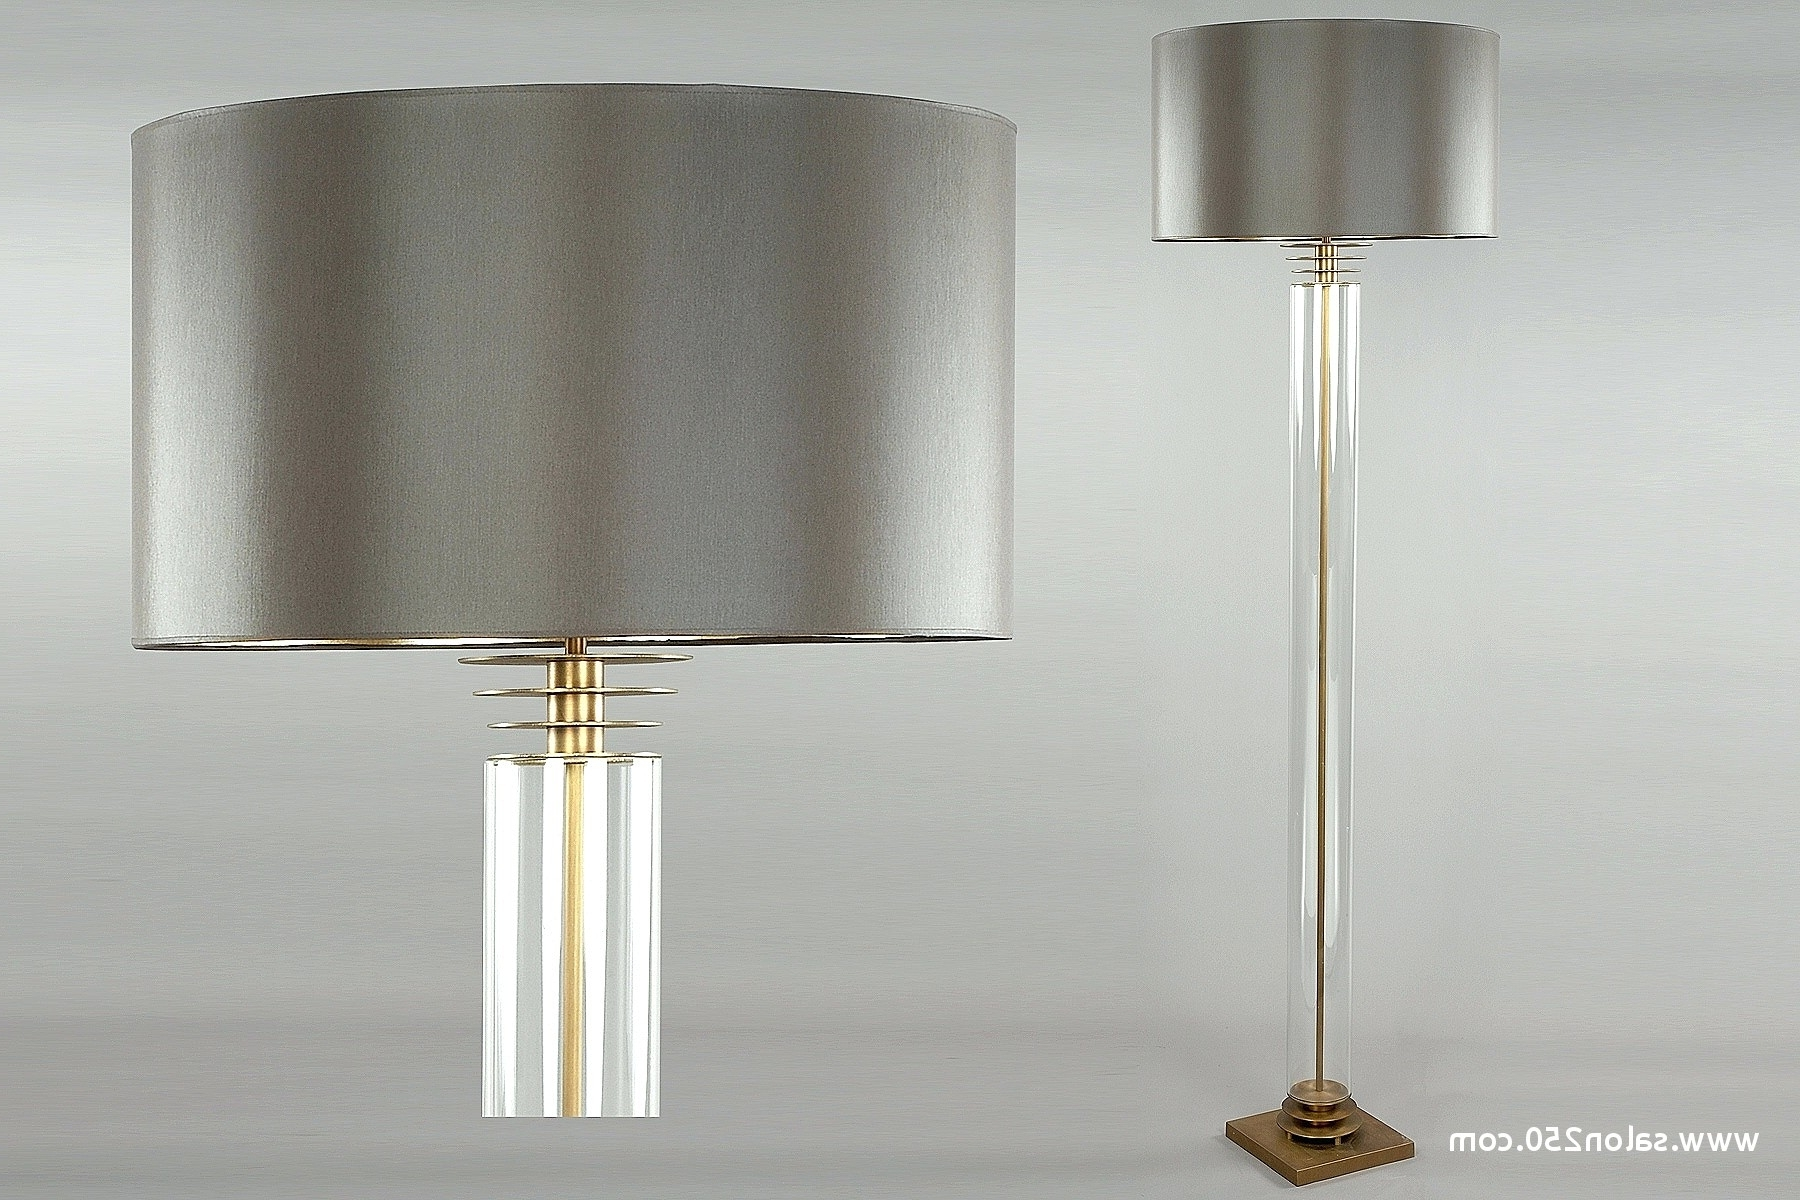 Living Room Table Reading Lamps Within Newest Light : Floor Lamp Shade Replacement Luxury Lamps Glass Reflector (View 15 of 20)